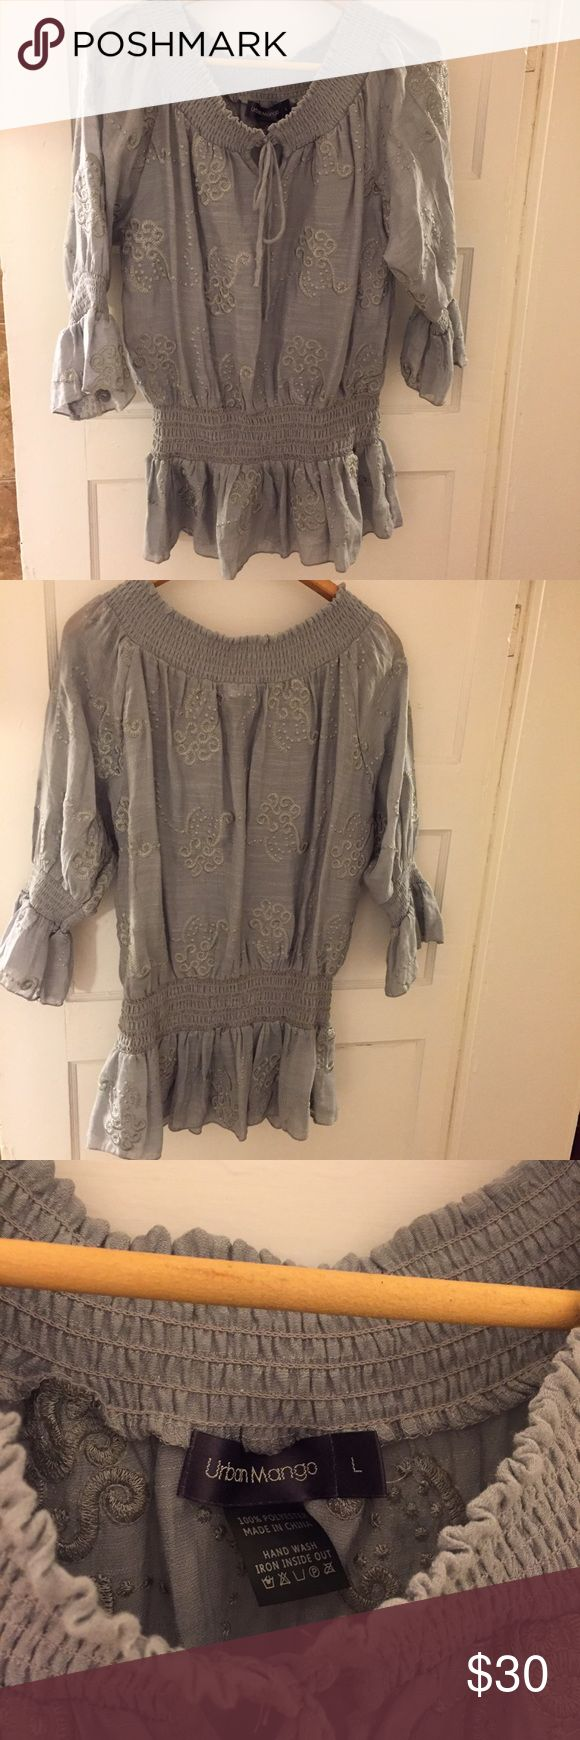 Urban Mango Top NWOT Size L NWOT never worn. Gray color. Size L. Can be worn on or off the shoulders. Urban Mango Tops Blouses